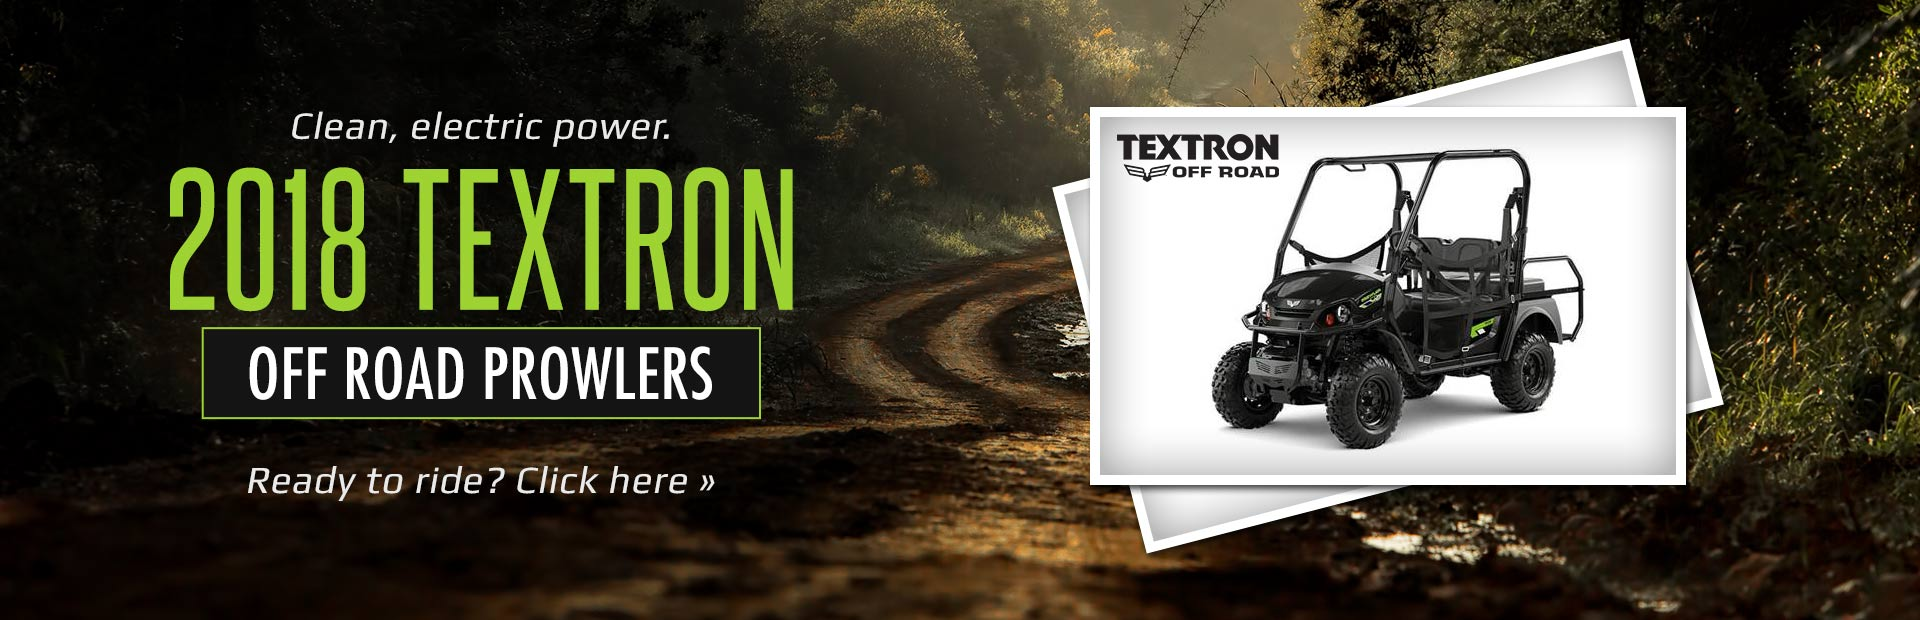 2018 Textron Off Road Prowlers: Click here to view the models!